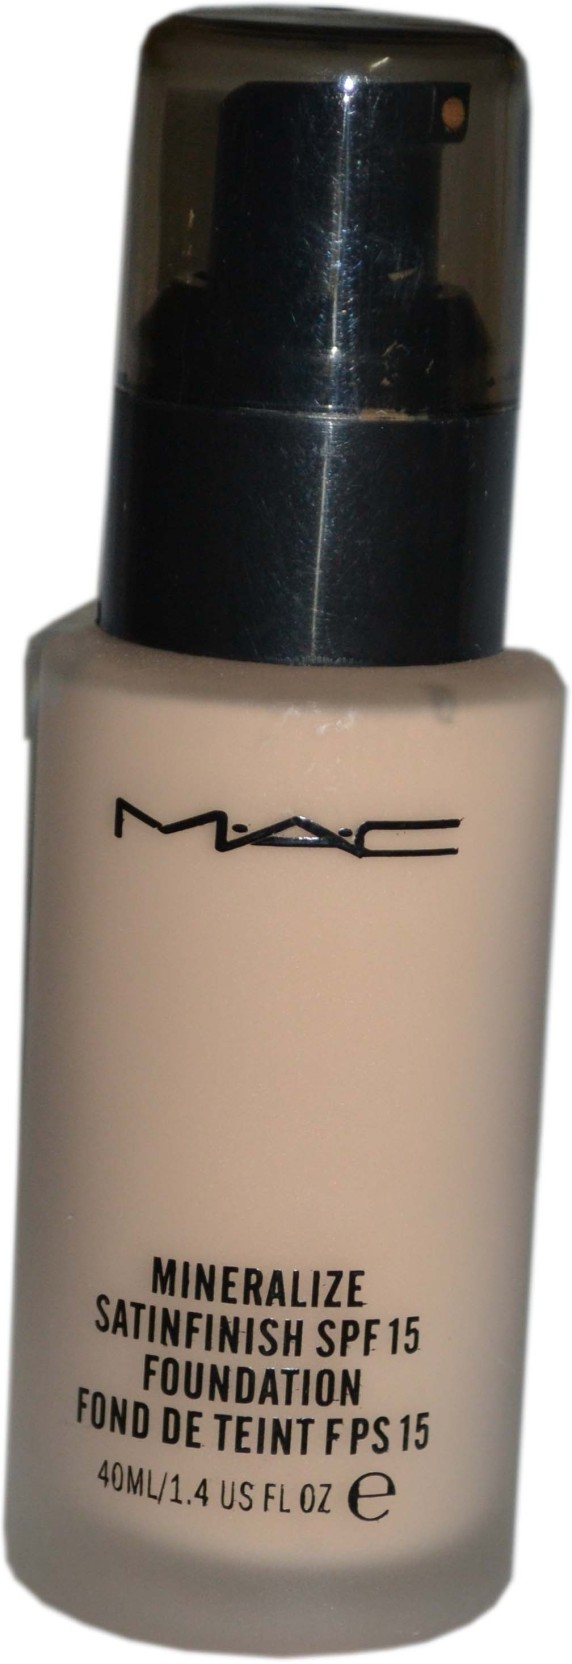 Have you used MAC Mineralize Satinfinish SPF 15 Foundation? Please rate in the box below.